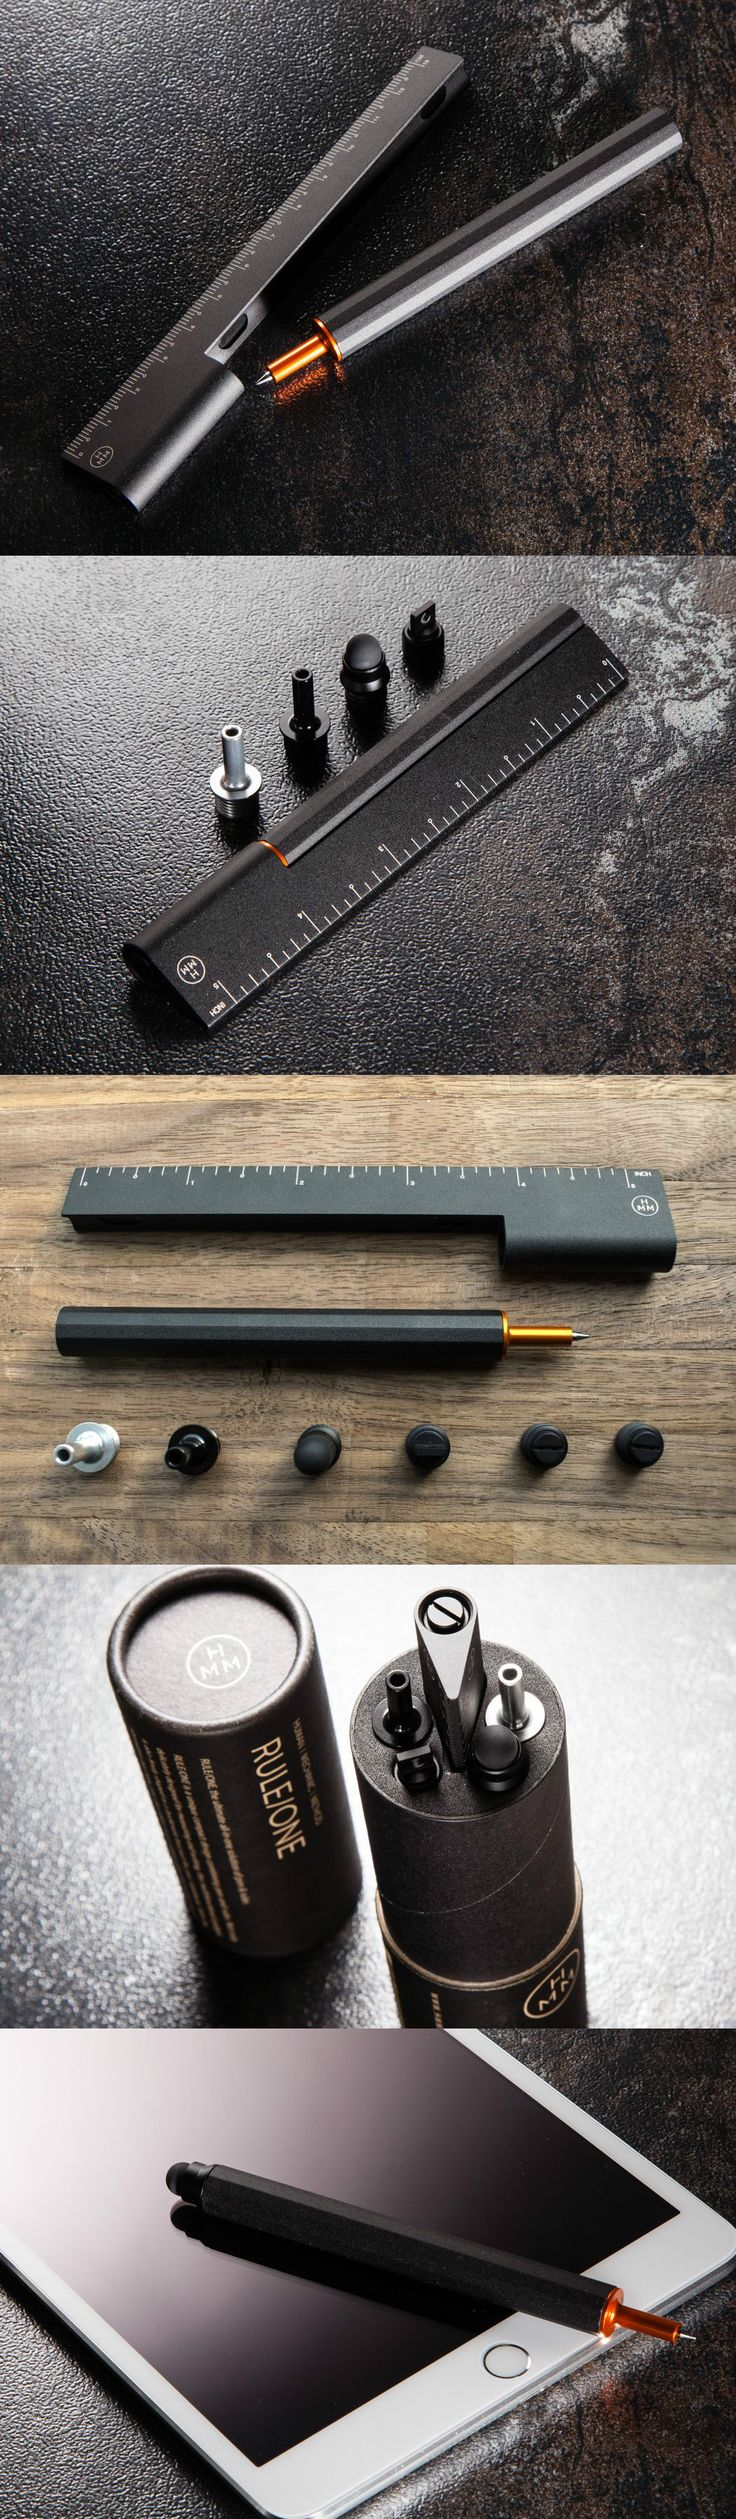 158 best strictly product design images on Pinterest | Product ...